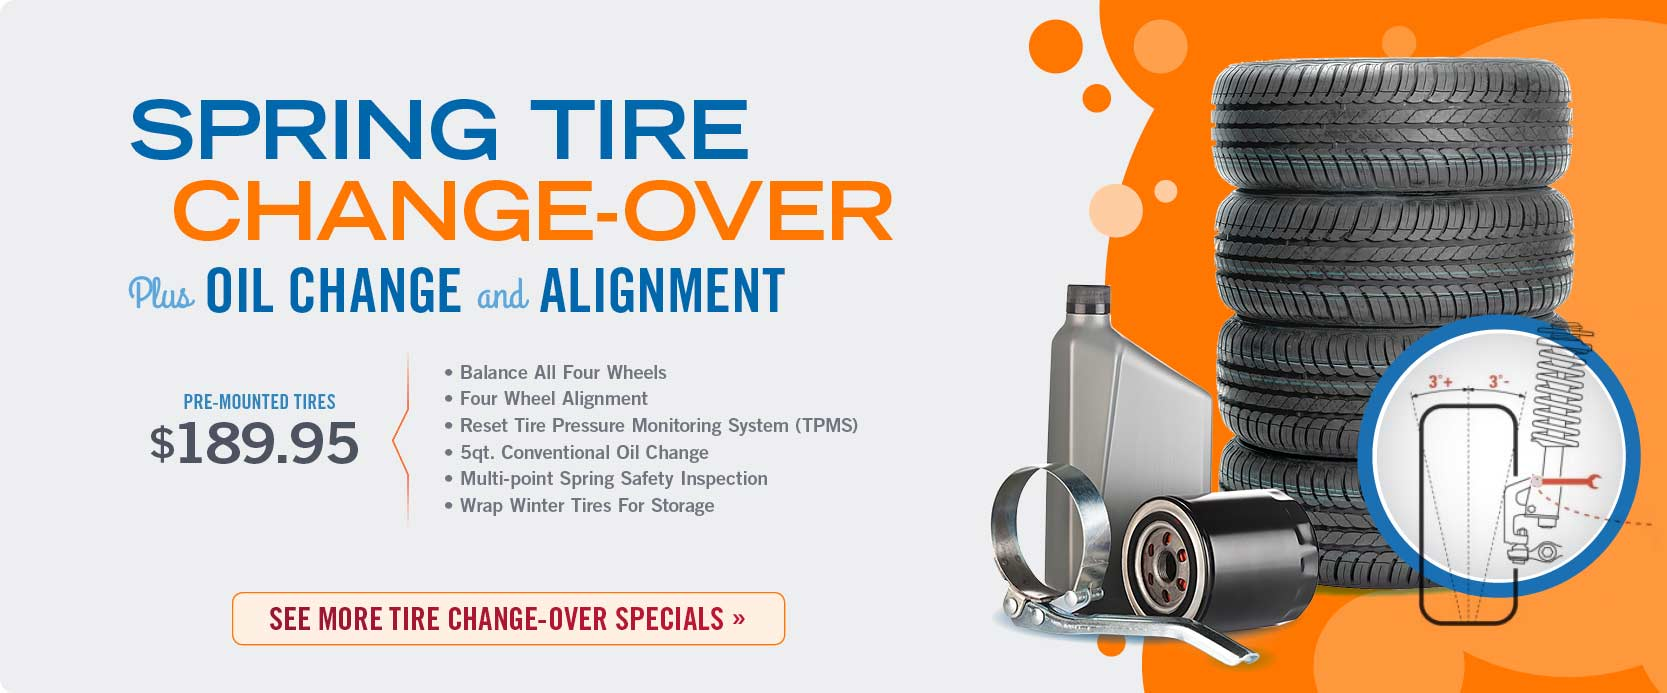 18MAR Tire Changeover Specials